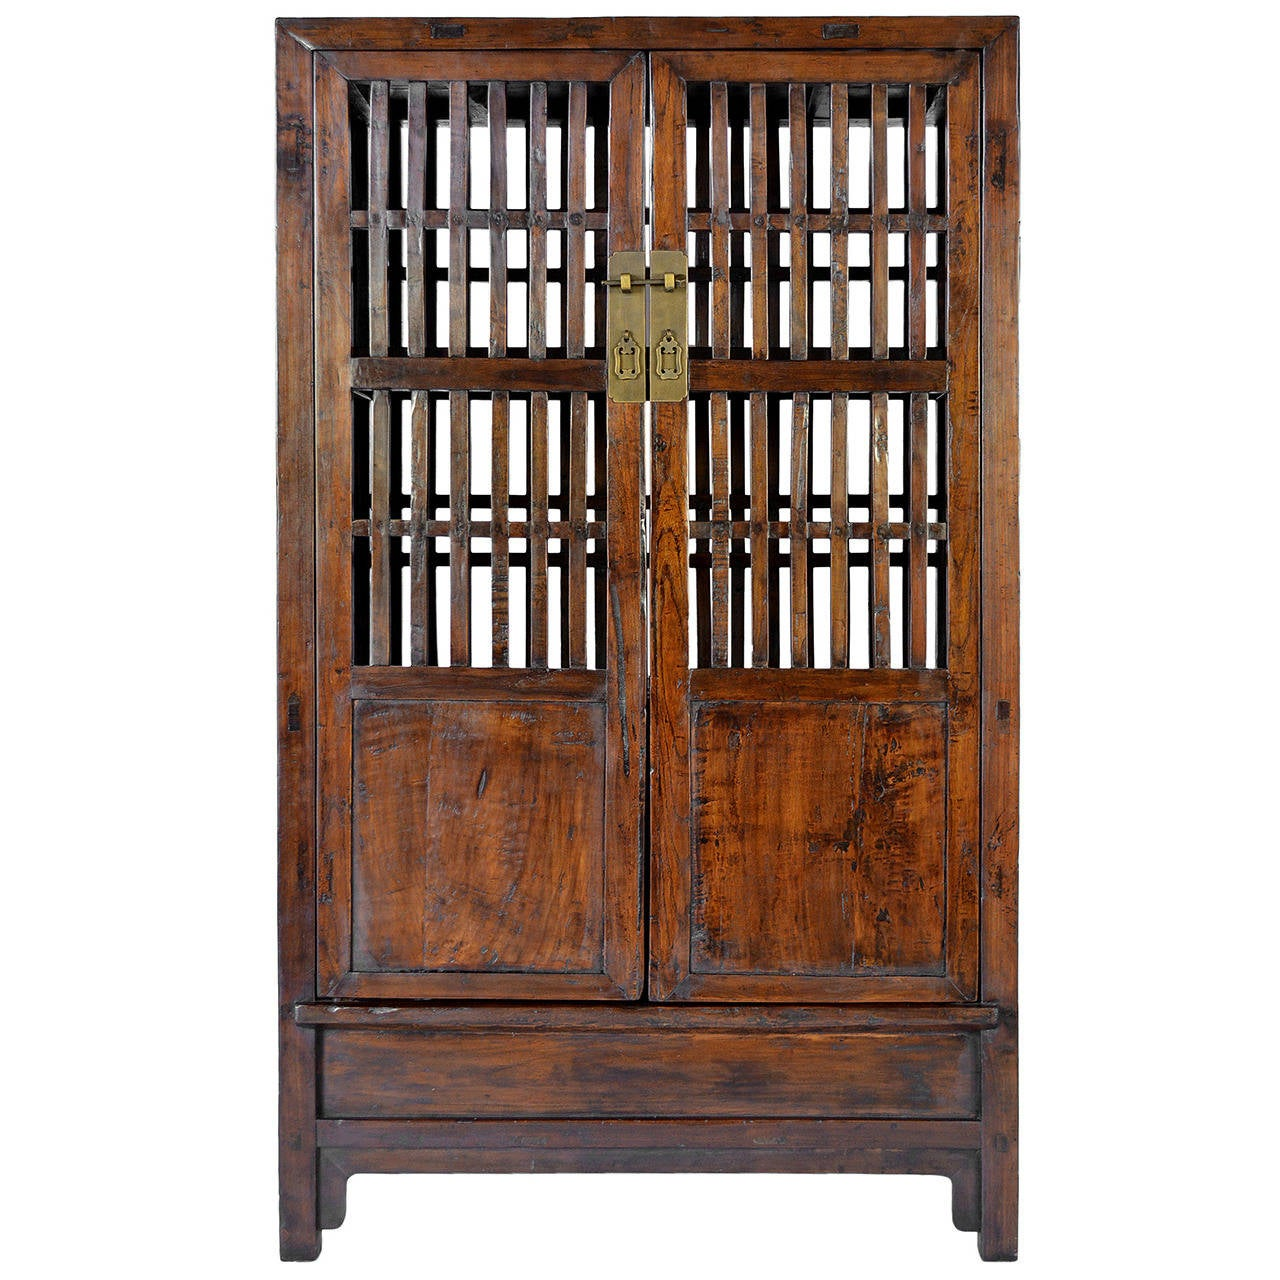 19th century chinese kitchen cabinet at 1stdibs for 19th century kitchen cabinets